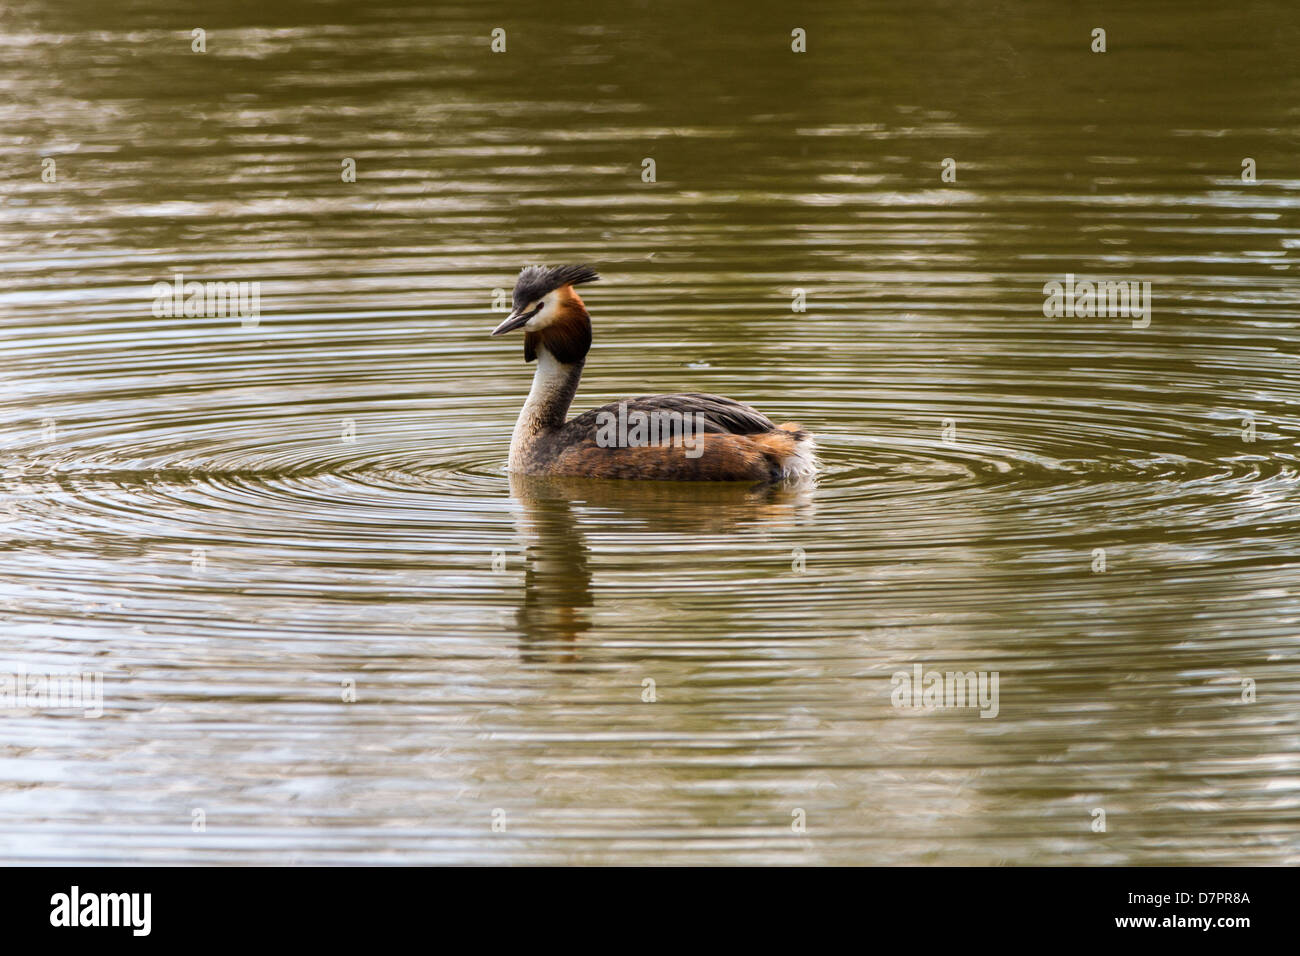 Great Crested Grebe swimming on lake in Sessex - Stock Image